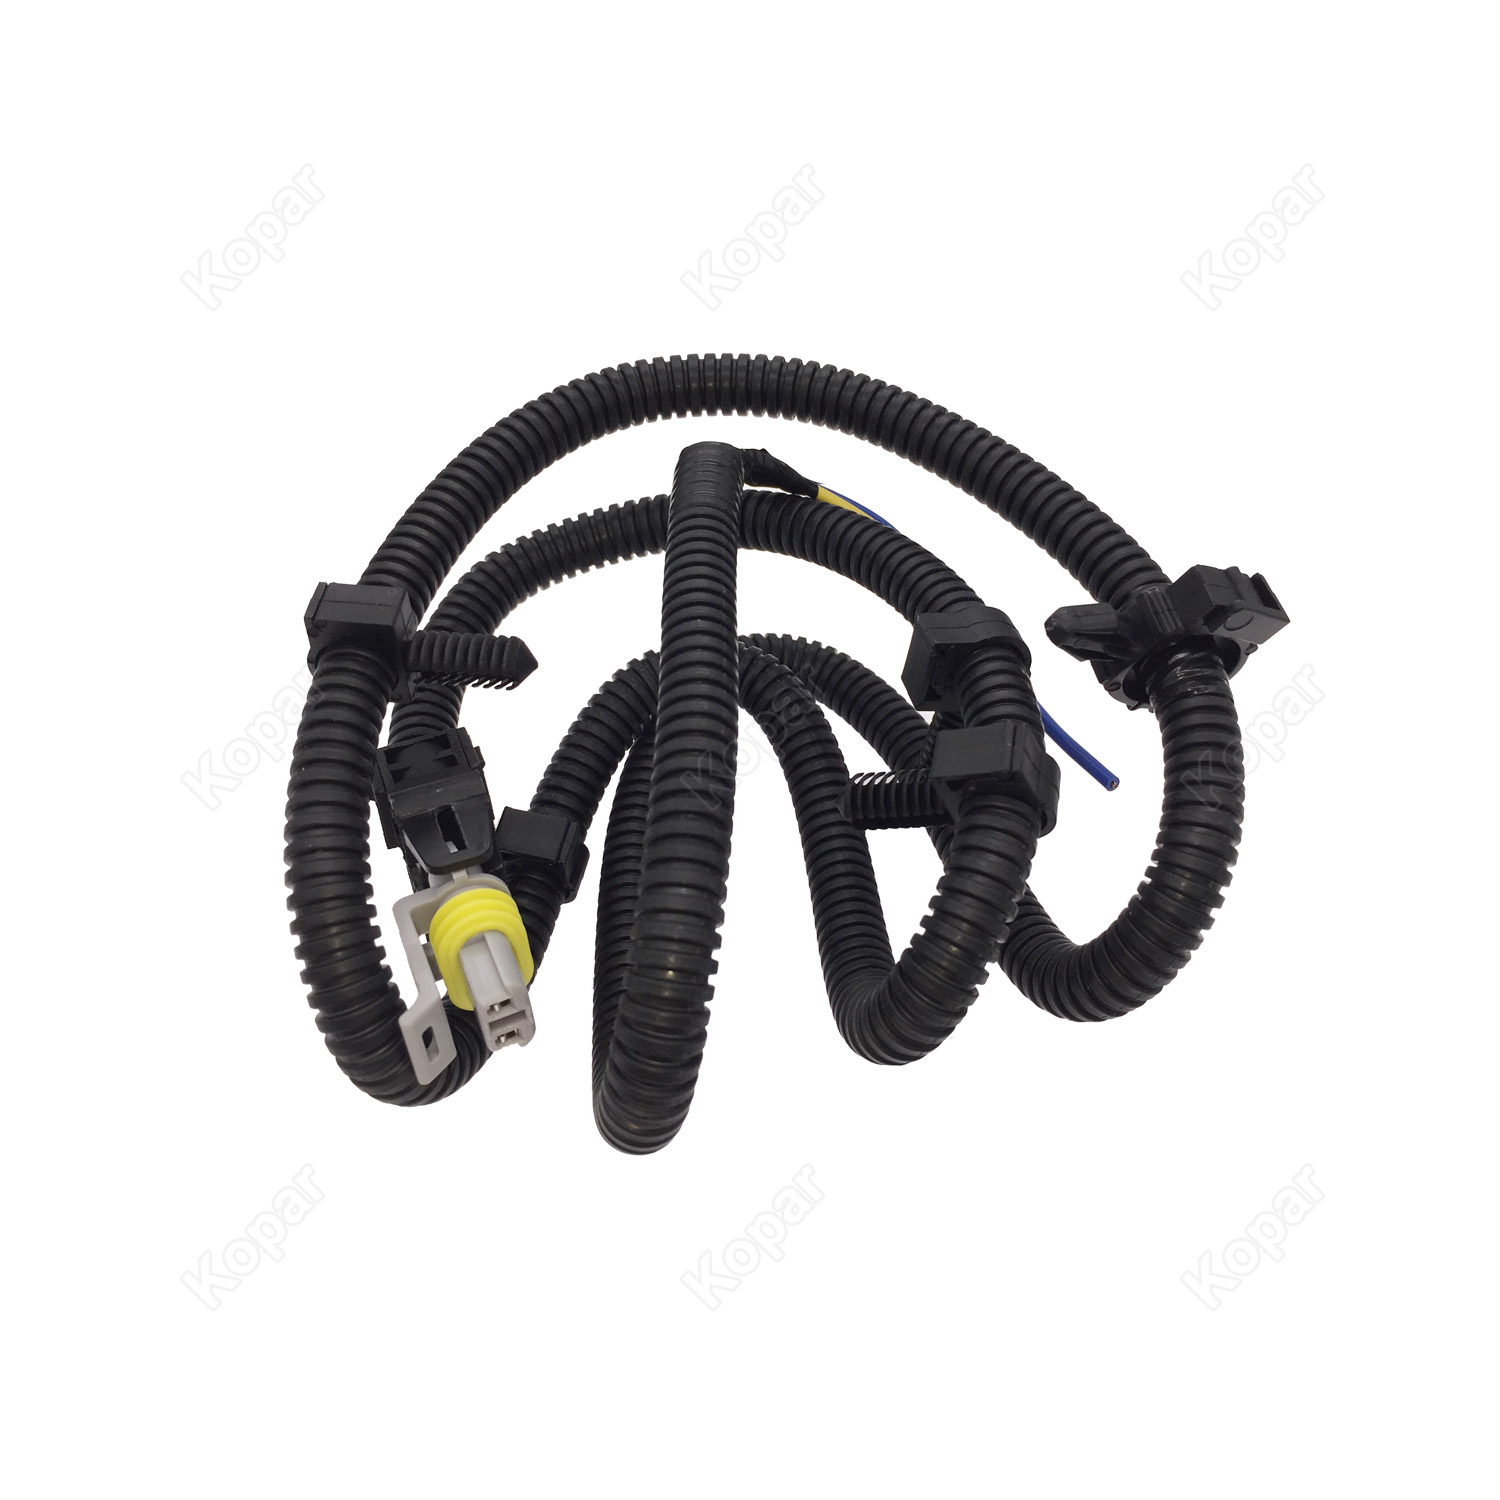 Front Abs Sensor Harness Wire N15002 For 2000 2005 Chevrolet Impala Chevy Wiring Ebay Online Store Home Description Picture Payment Shipping Warranty